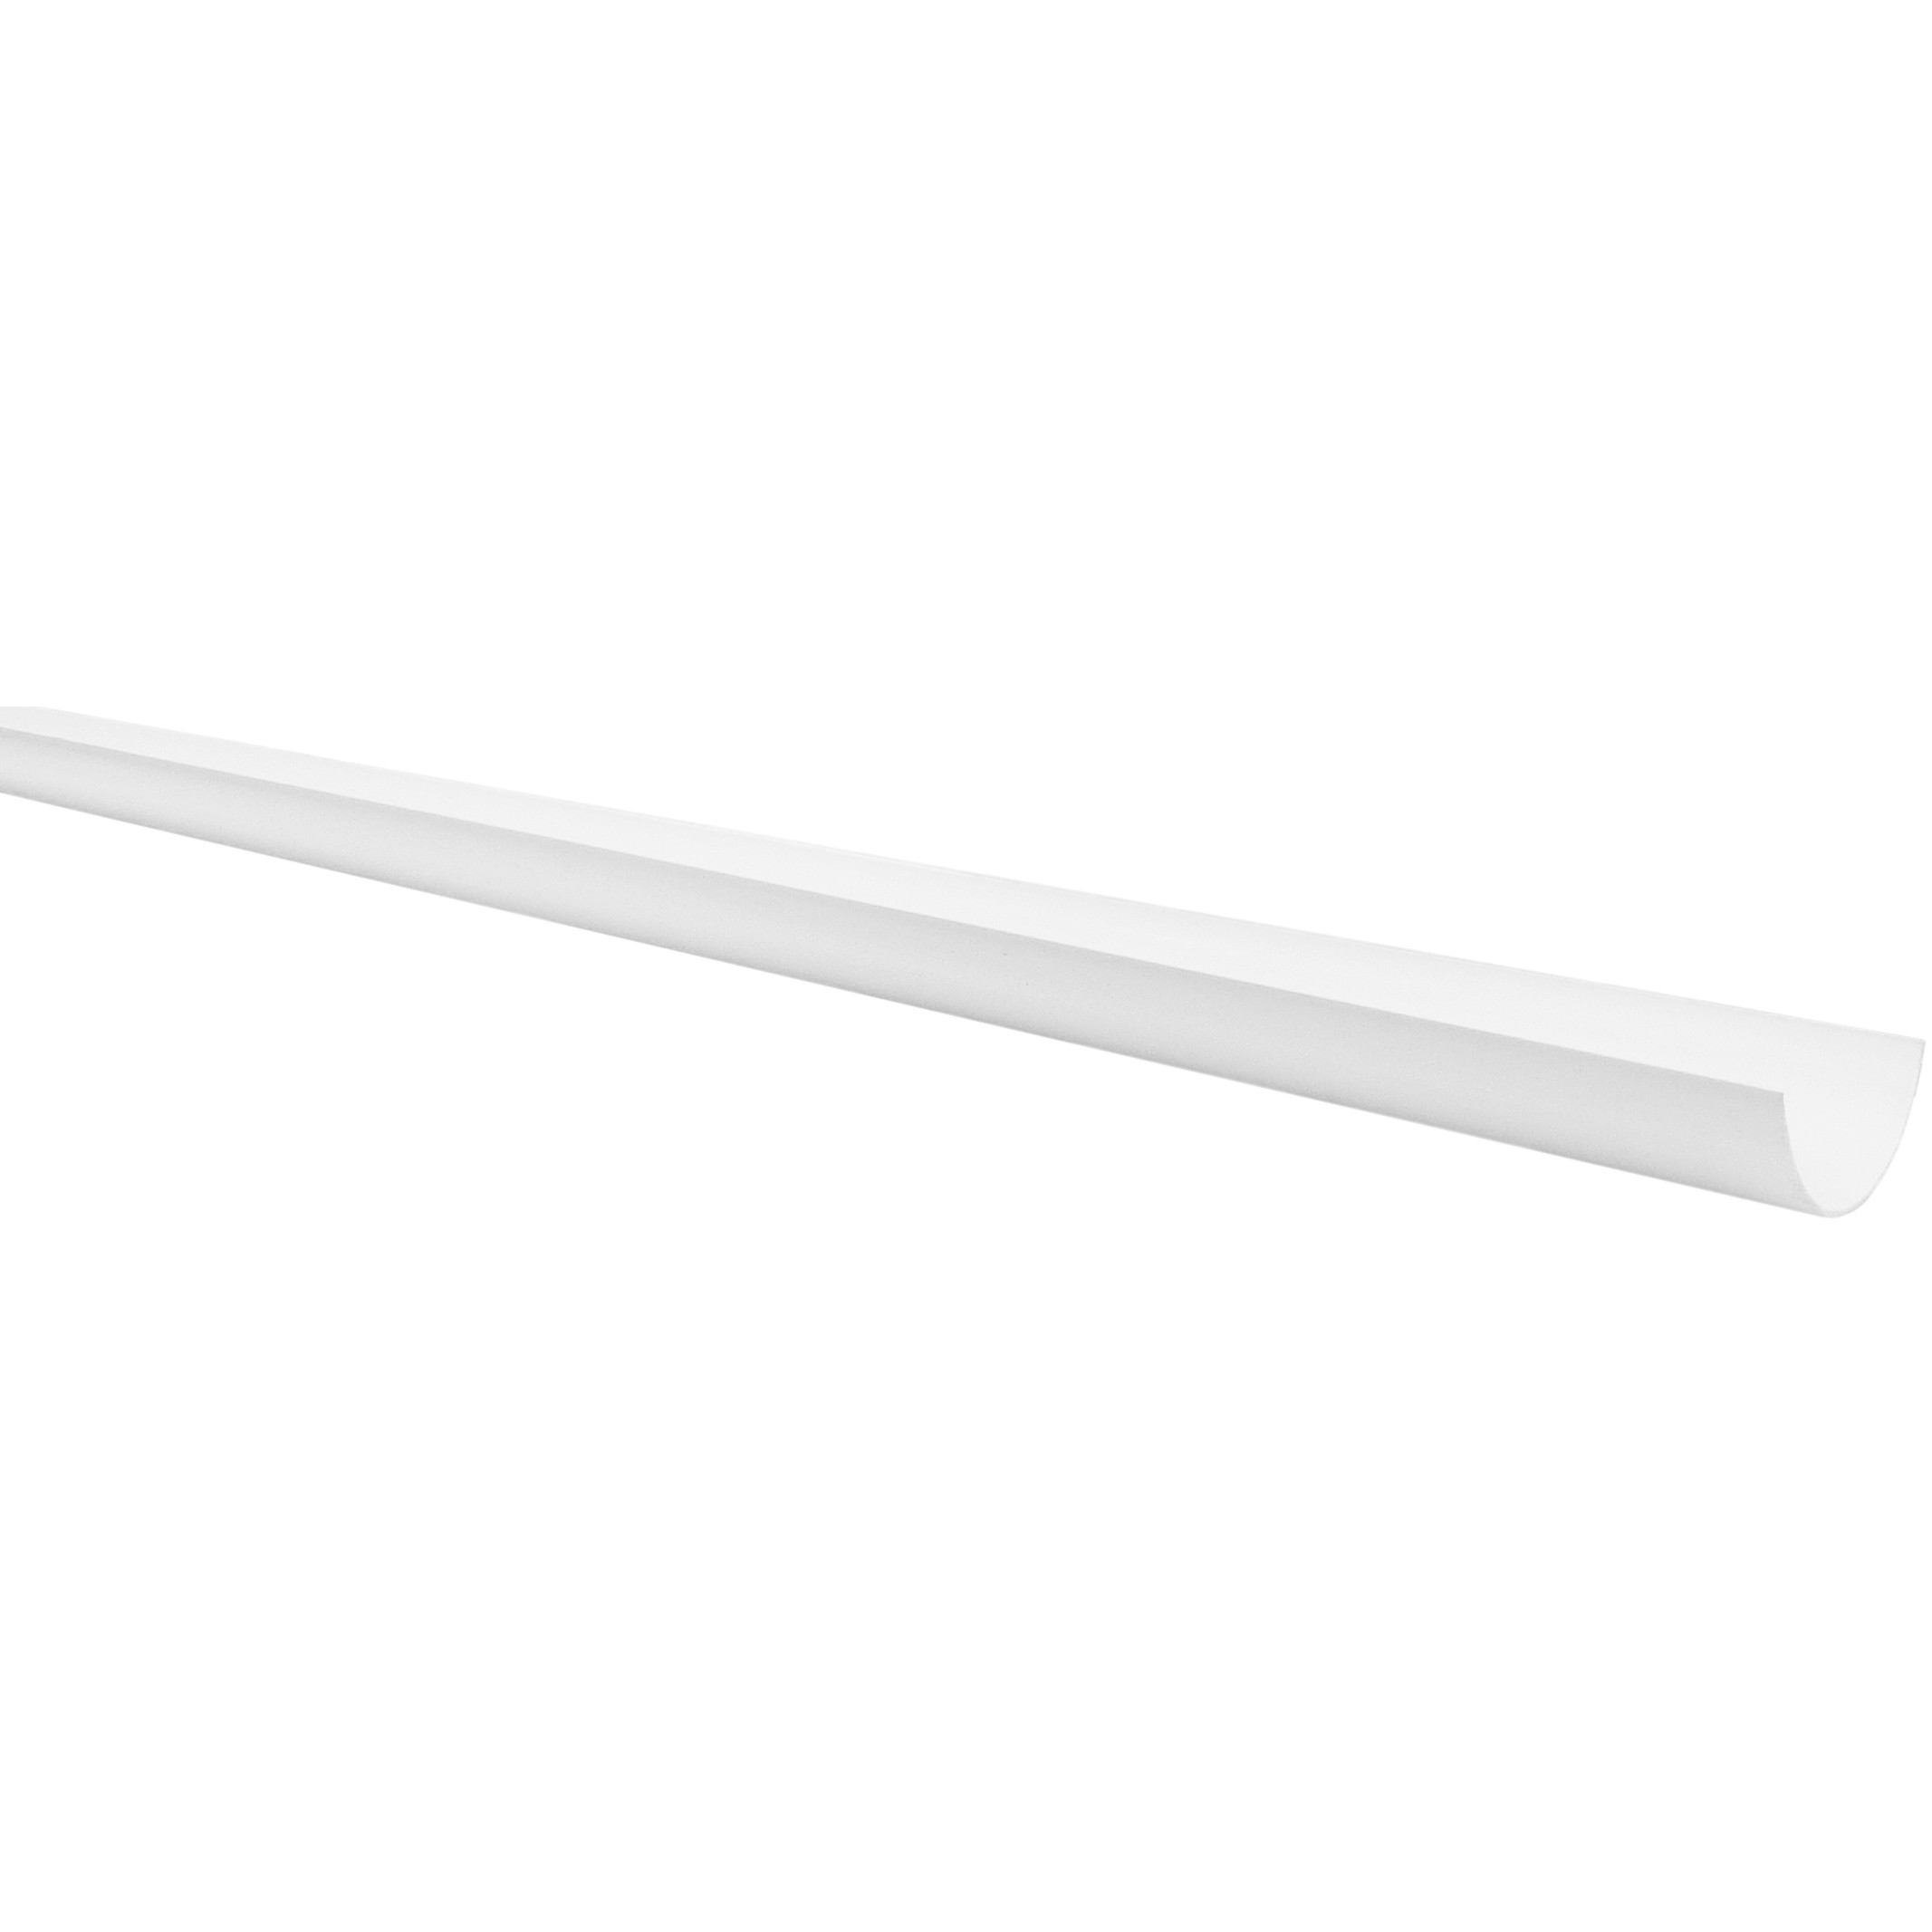 Polypipe 75mm Mini Half Round Gutter - White, 2 metre